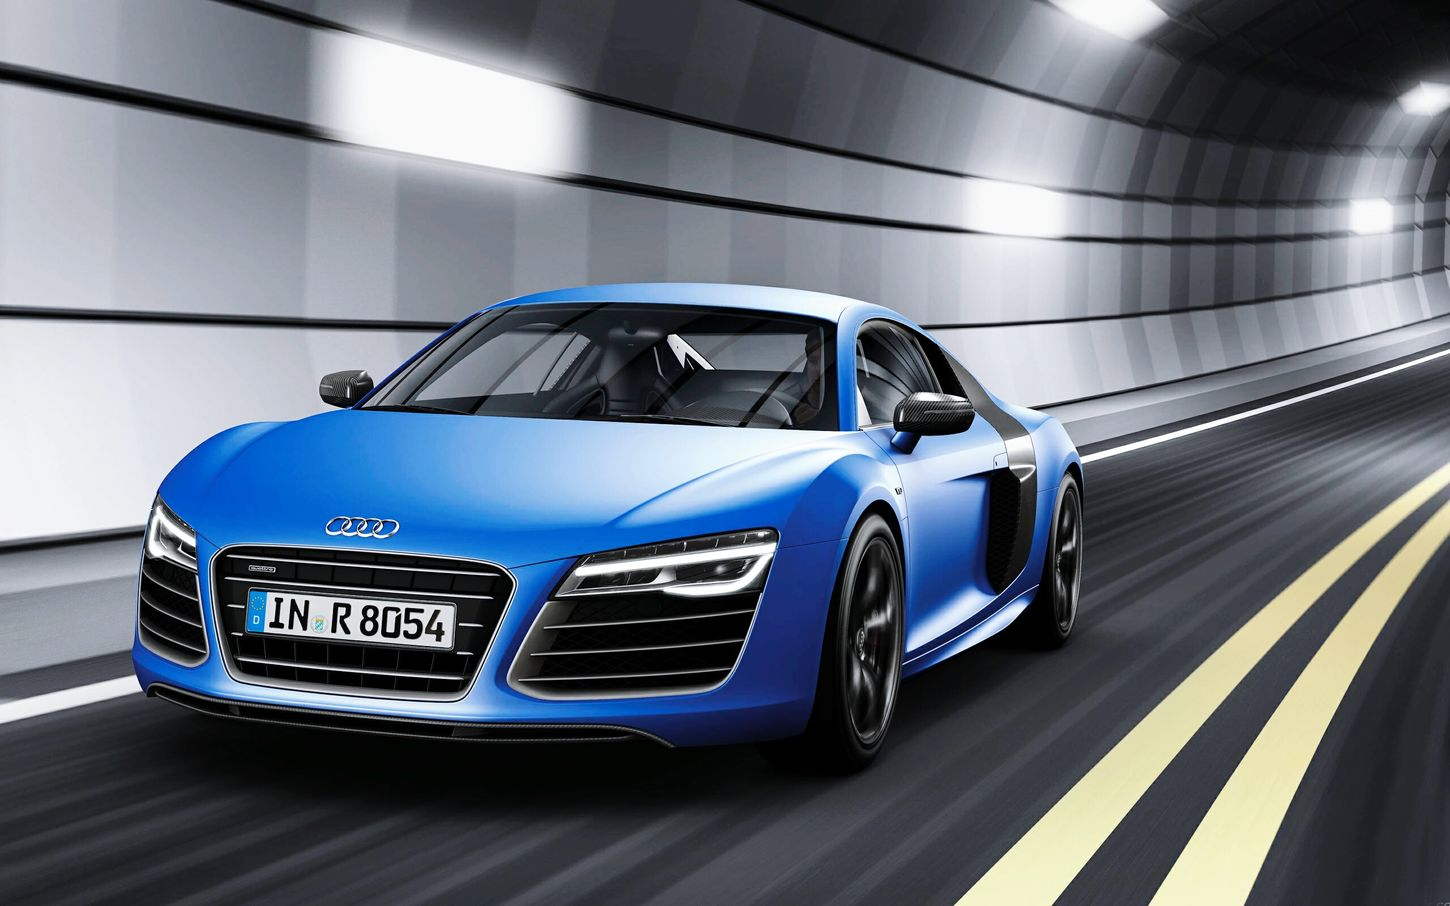 Audi R8 Fast Check This Out Bluecar Taking Photos Relaxing Car_On_EyeEm Cars Who Want This ?  Car Road Supercars Dream Cars Audi